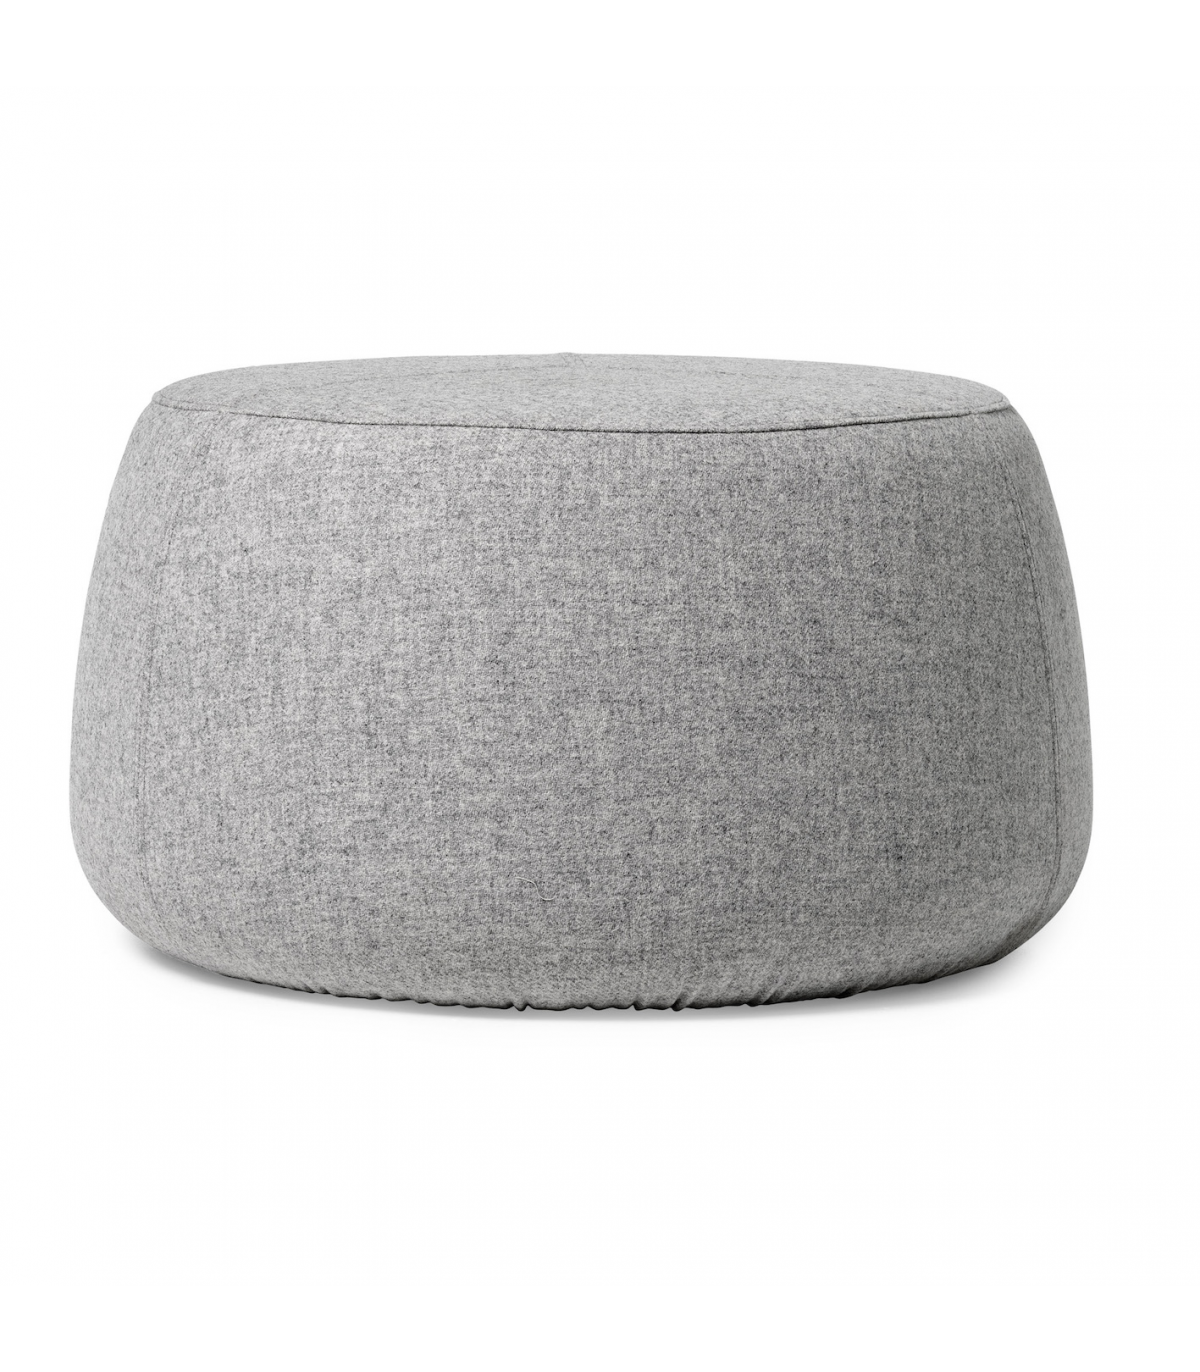 pouf gris deco in pouf coffre gris 28 images pouf tresse pieds pouf velours gris coffre de 28. Black Bedroom Furniture Sets. Home Design Ideas